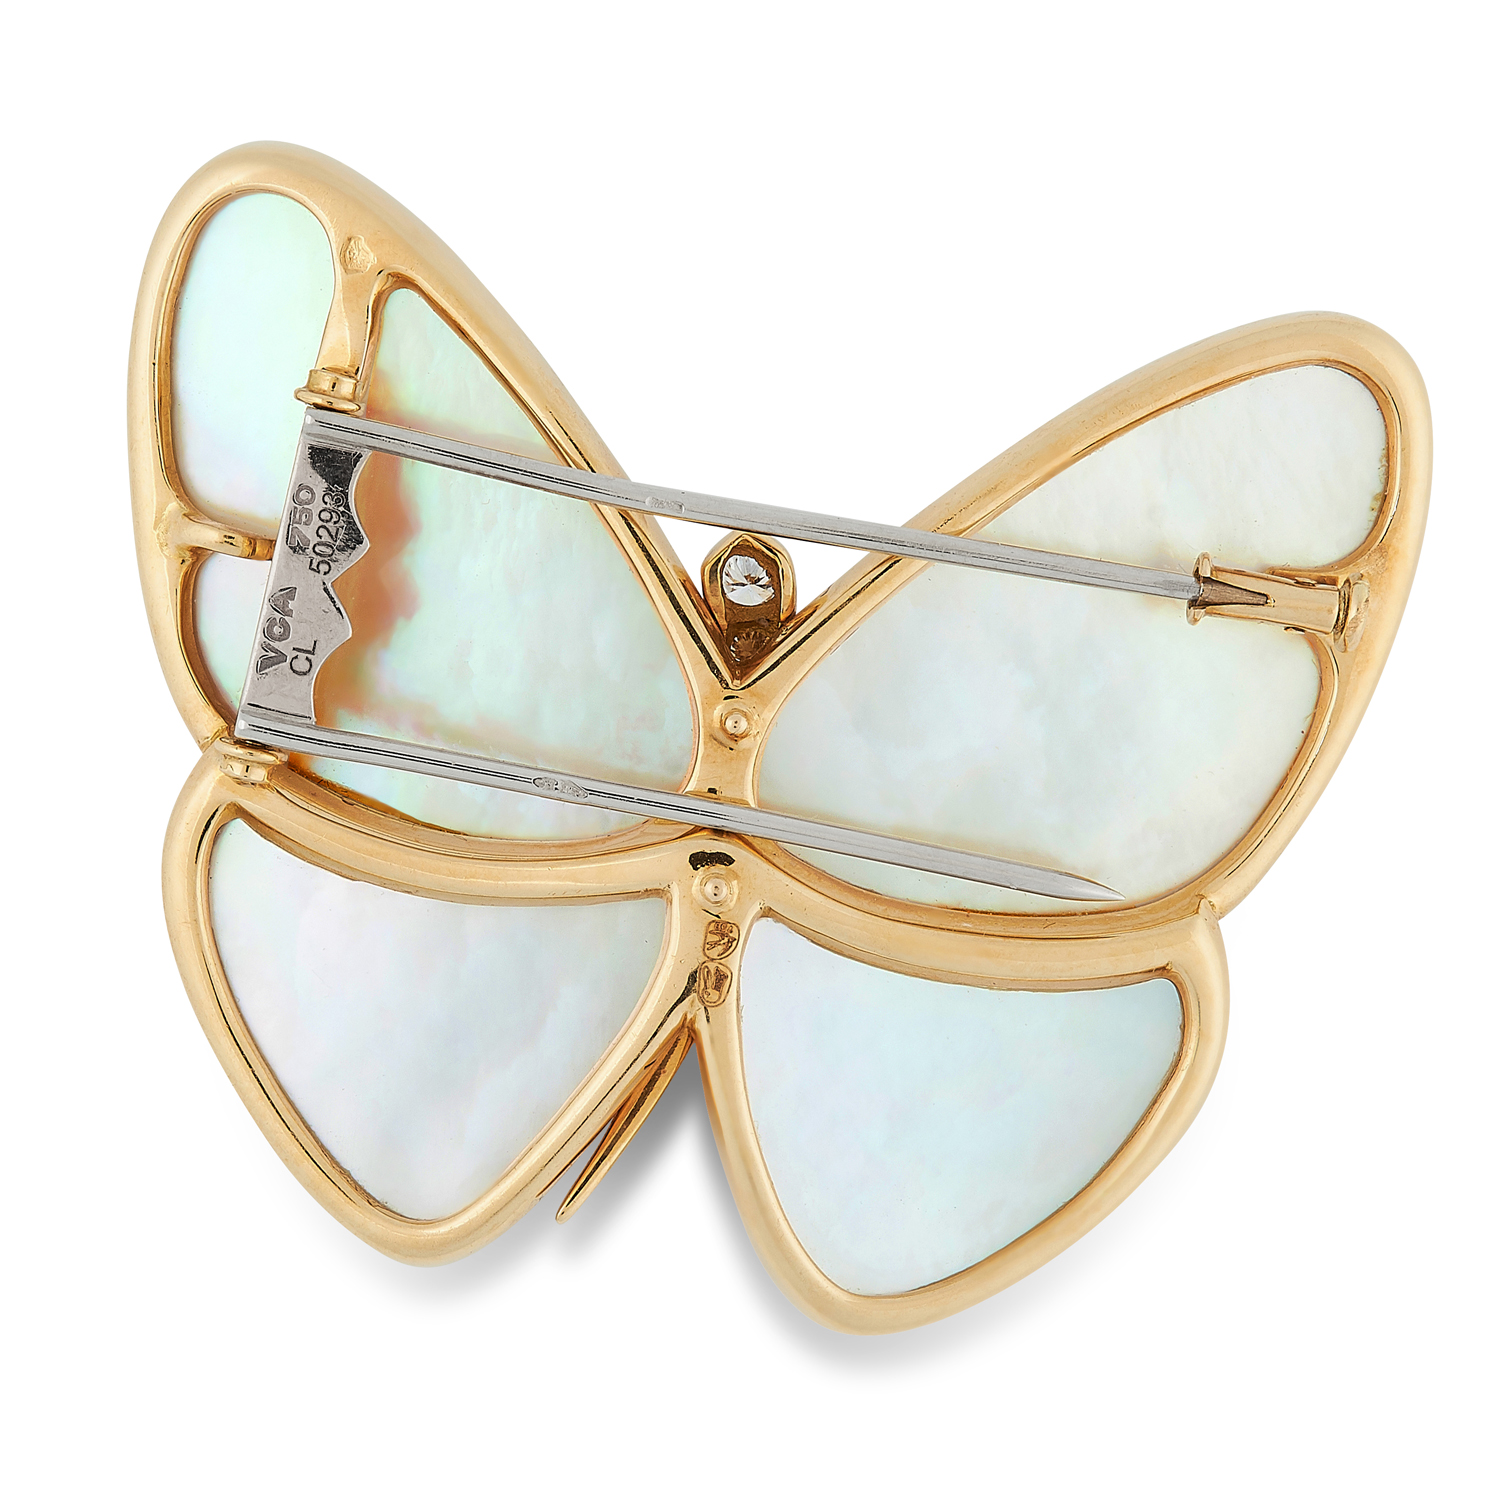 A MOTHER OF PEARL AND DIAMOND BUTTERFLY BROOCH, VAN CLEEF & ARPELS in 18ct yellow gold, designed - Image 2 of 2